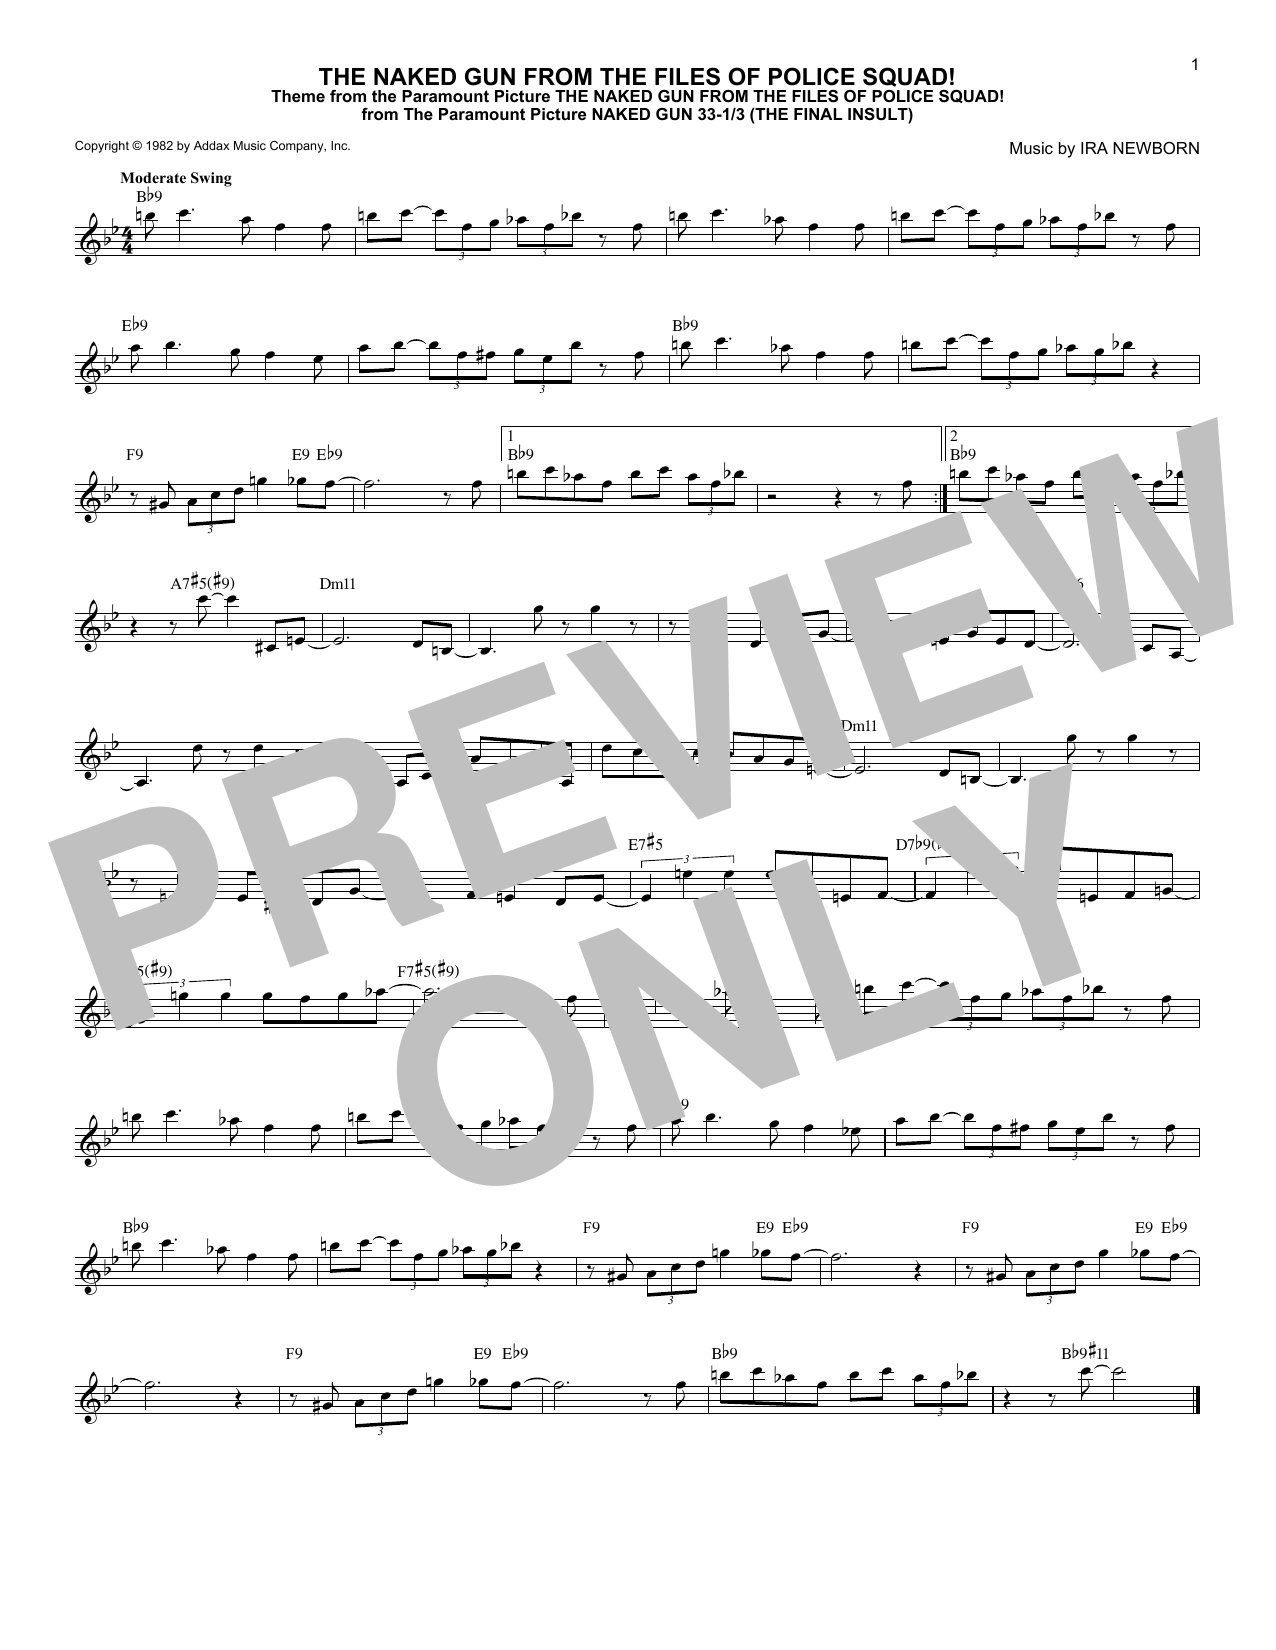 Ira Newborn The Naked Gun From The Files Of Police Squad! sheet music notes and chords. Download Printable PDF.